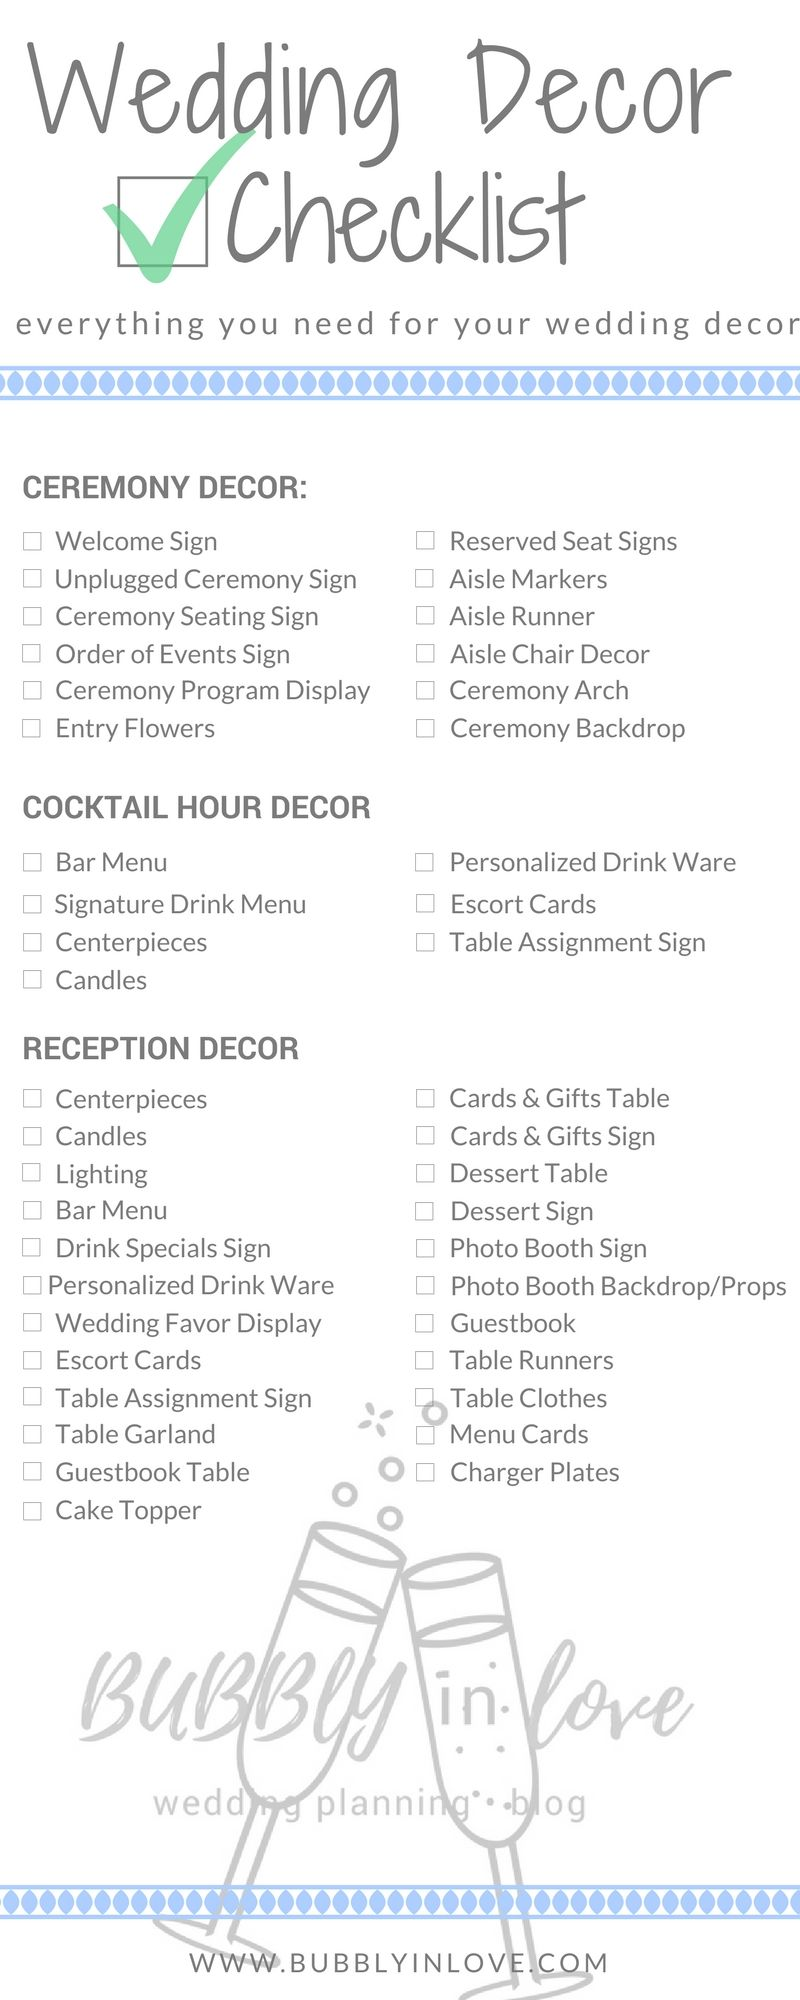 Wedding Decor Checklist Everything You Need To Plan Your Wedding Decor Wedding Decoration Checklist Wedding Reception Checklist Cocktail Hour Decor